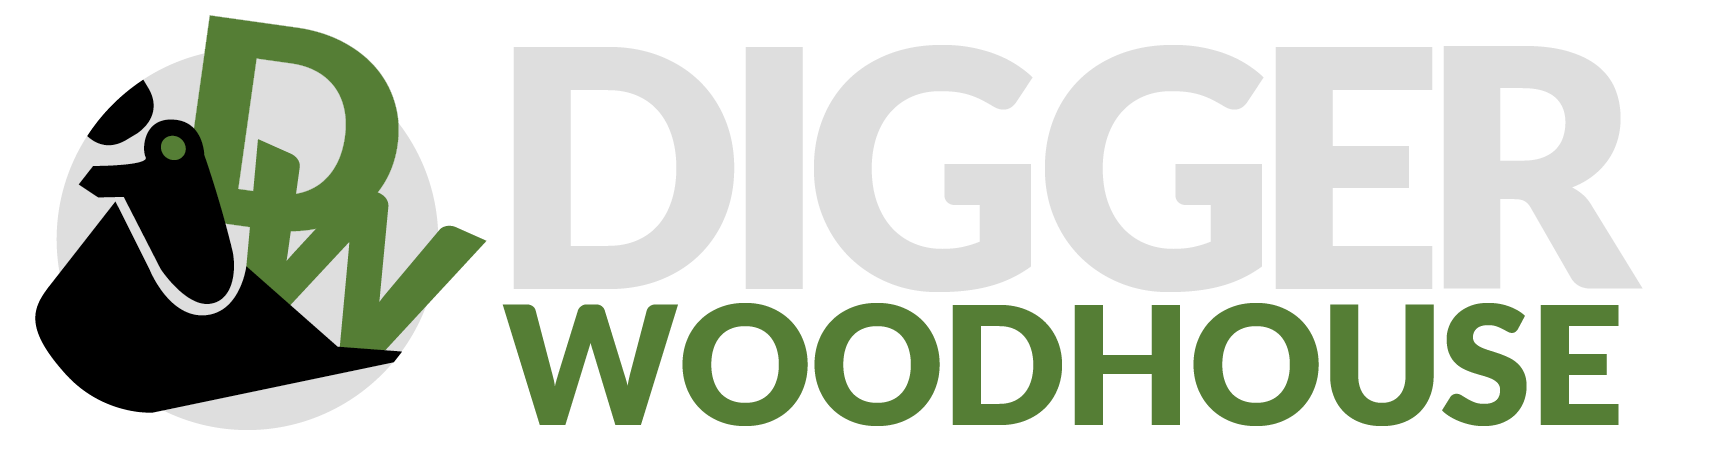 diggerwoodhouse